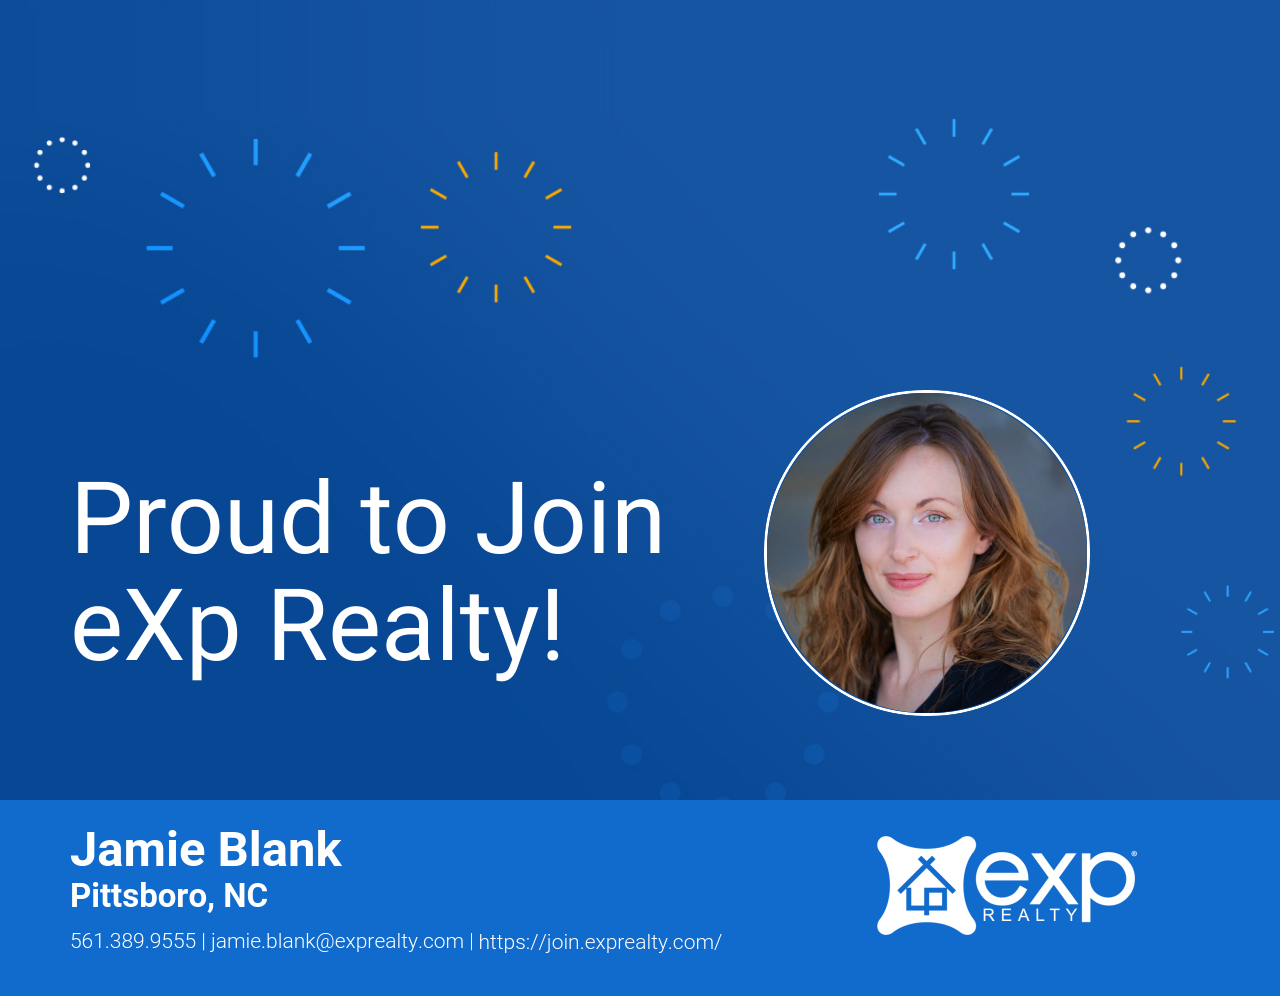 Jamie Blank Joined eXp Realty!